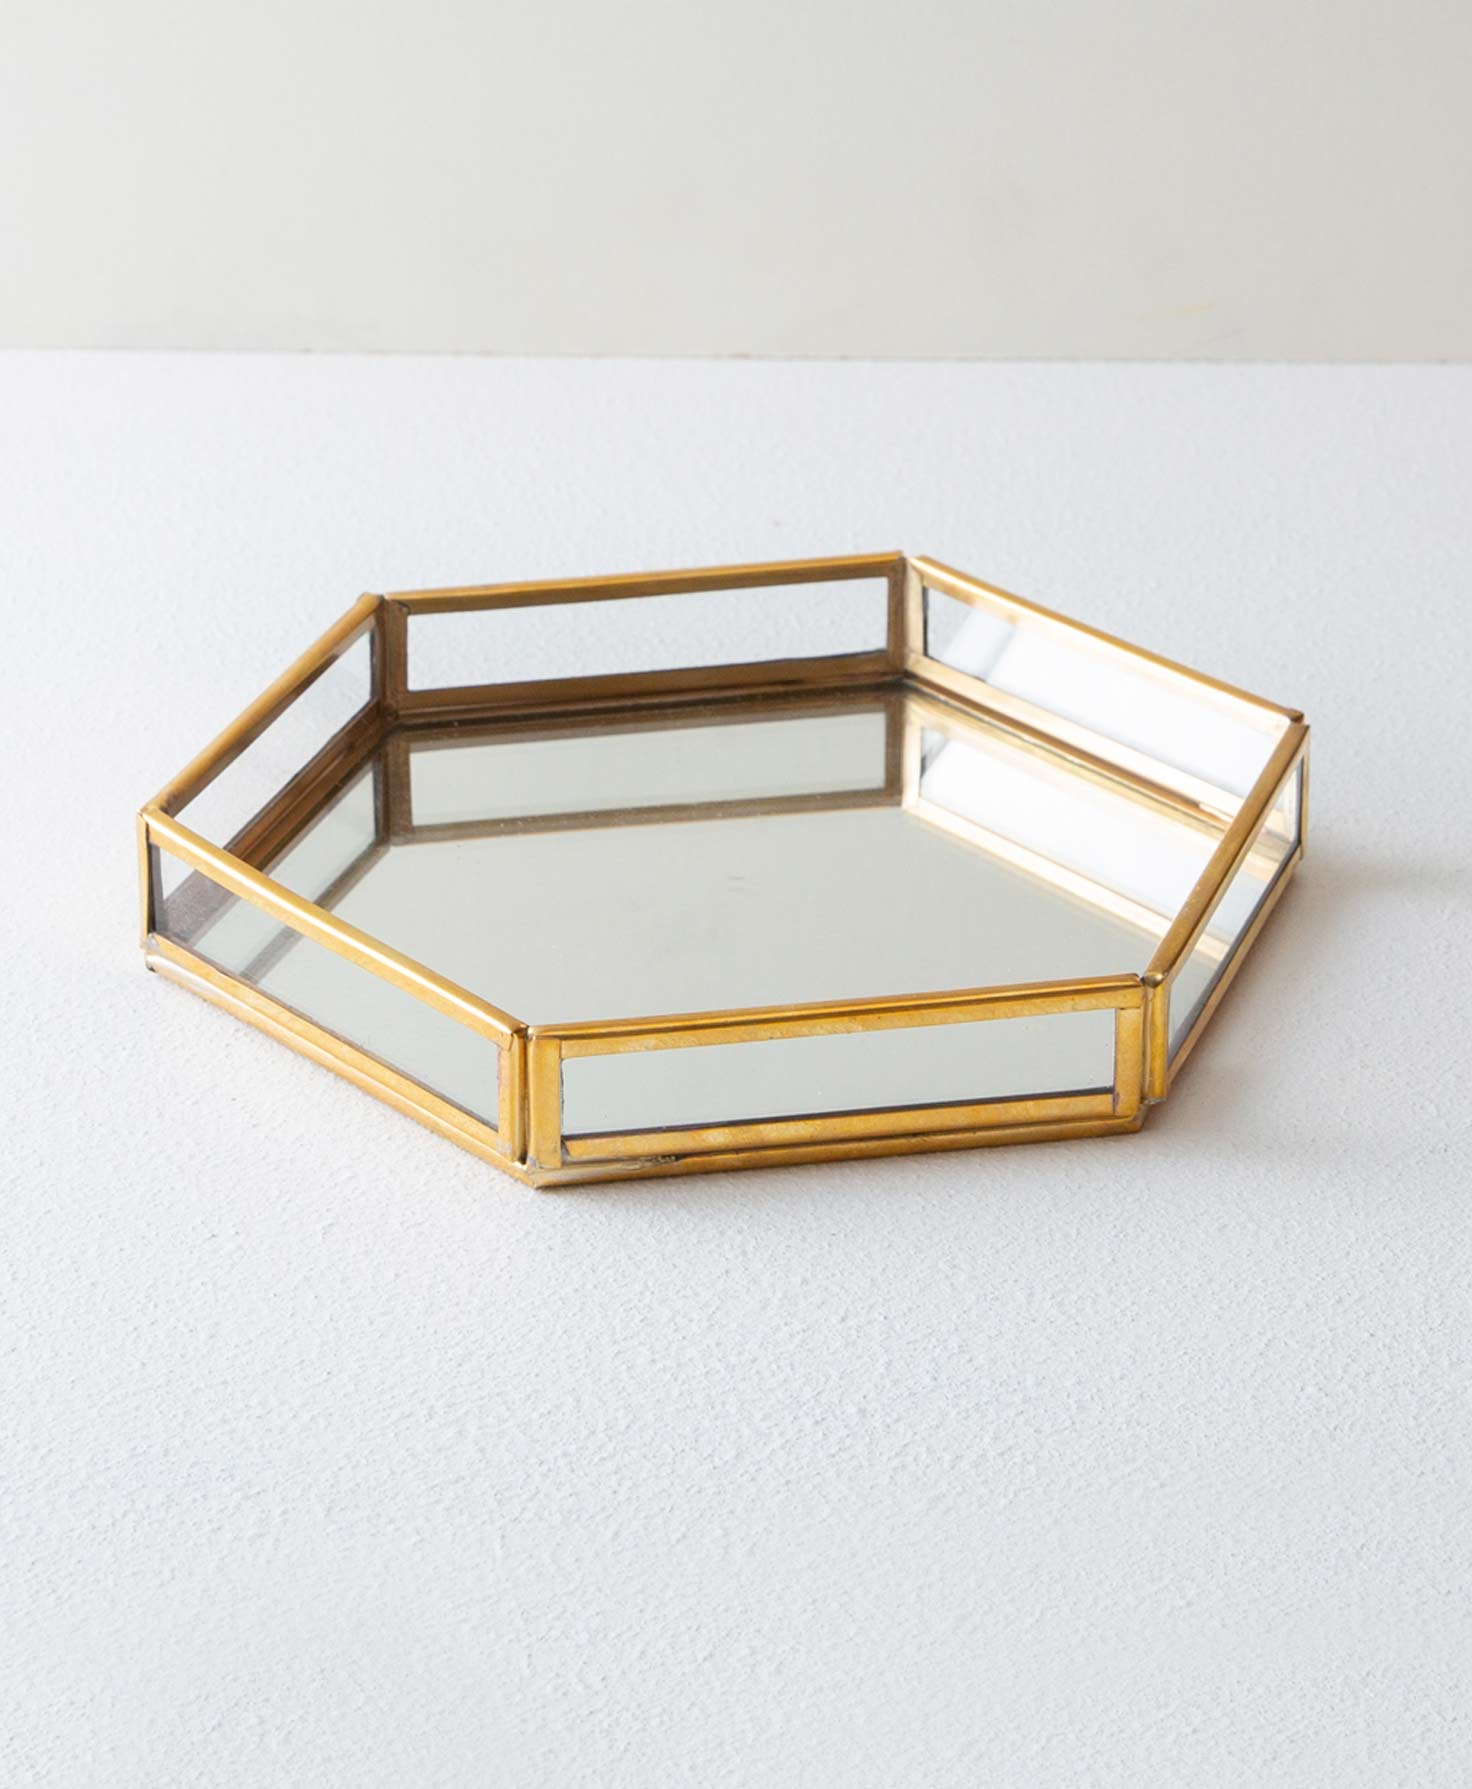 The Brass and Glass Hexagonal Tray sits on a white surface. It has six low sides composed of a rectangular glass panels framed in shining brass. The base of the tray is a hexagon made of mirrored glass.